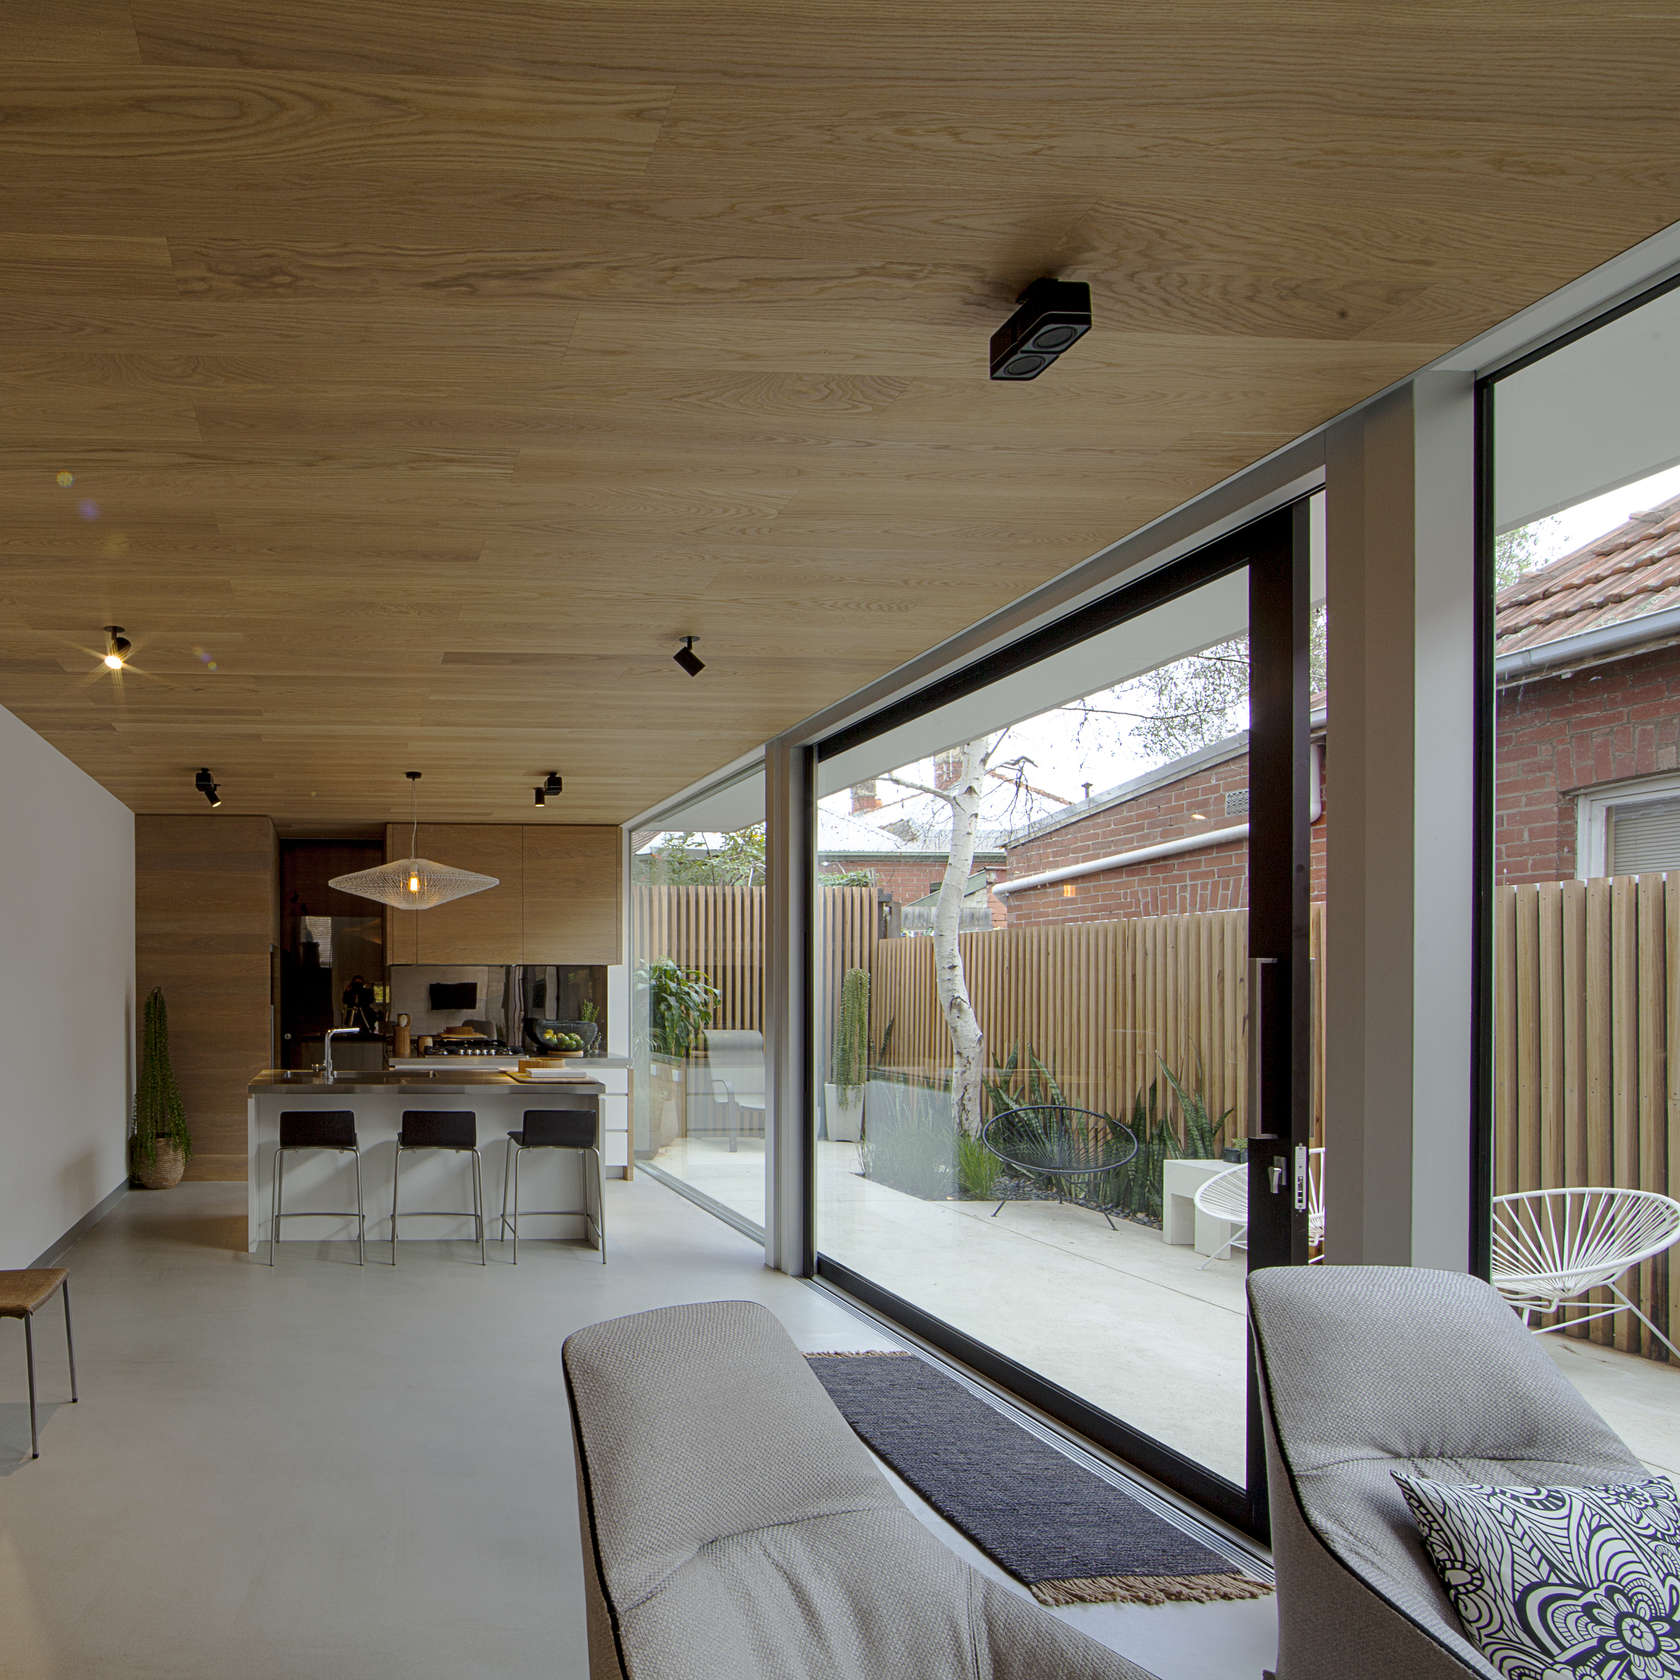 Skin-Box House by Man Architects (via Lunchbox Architect)